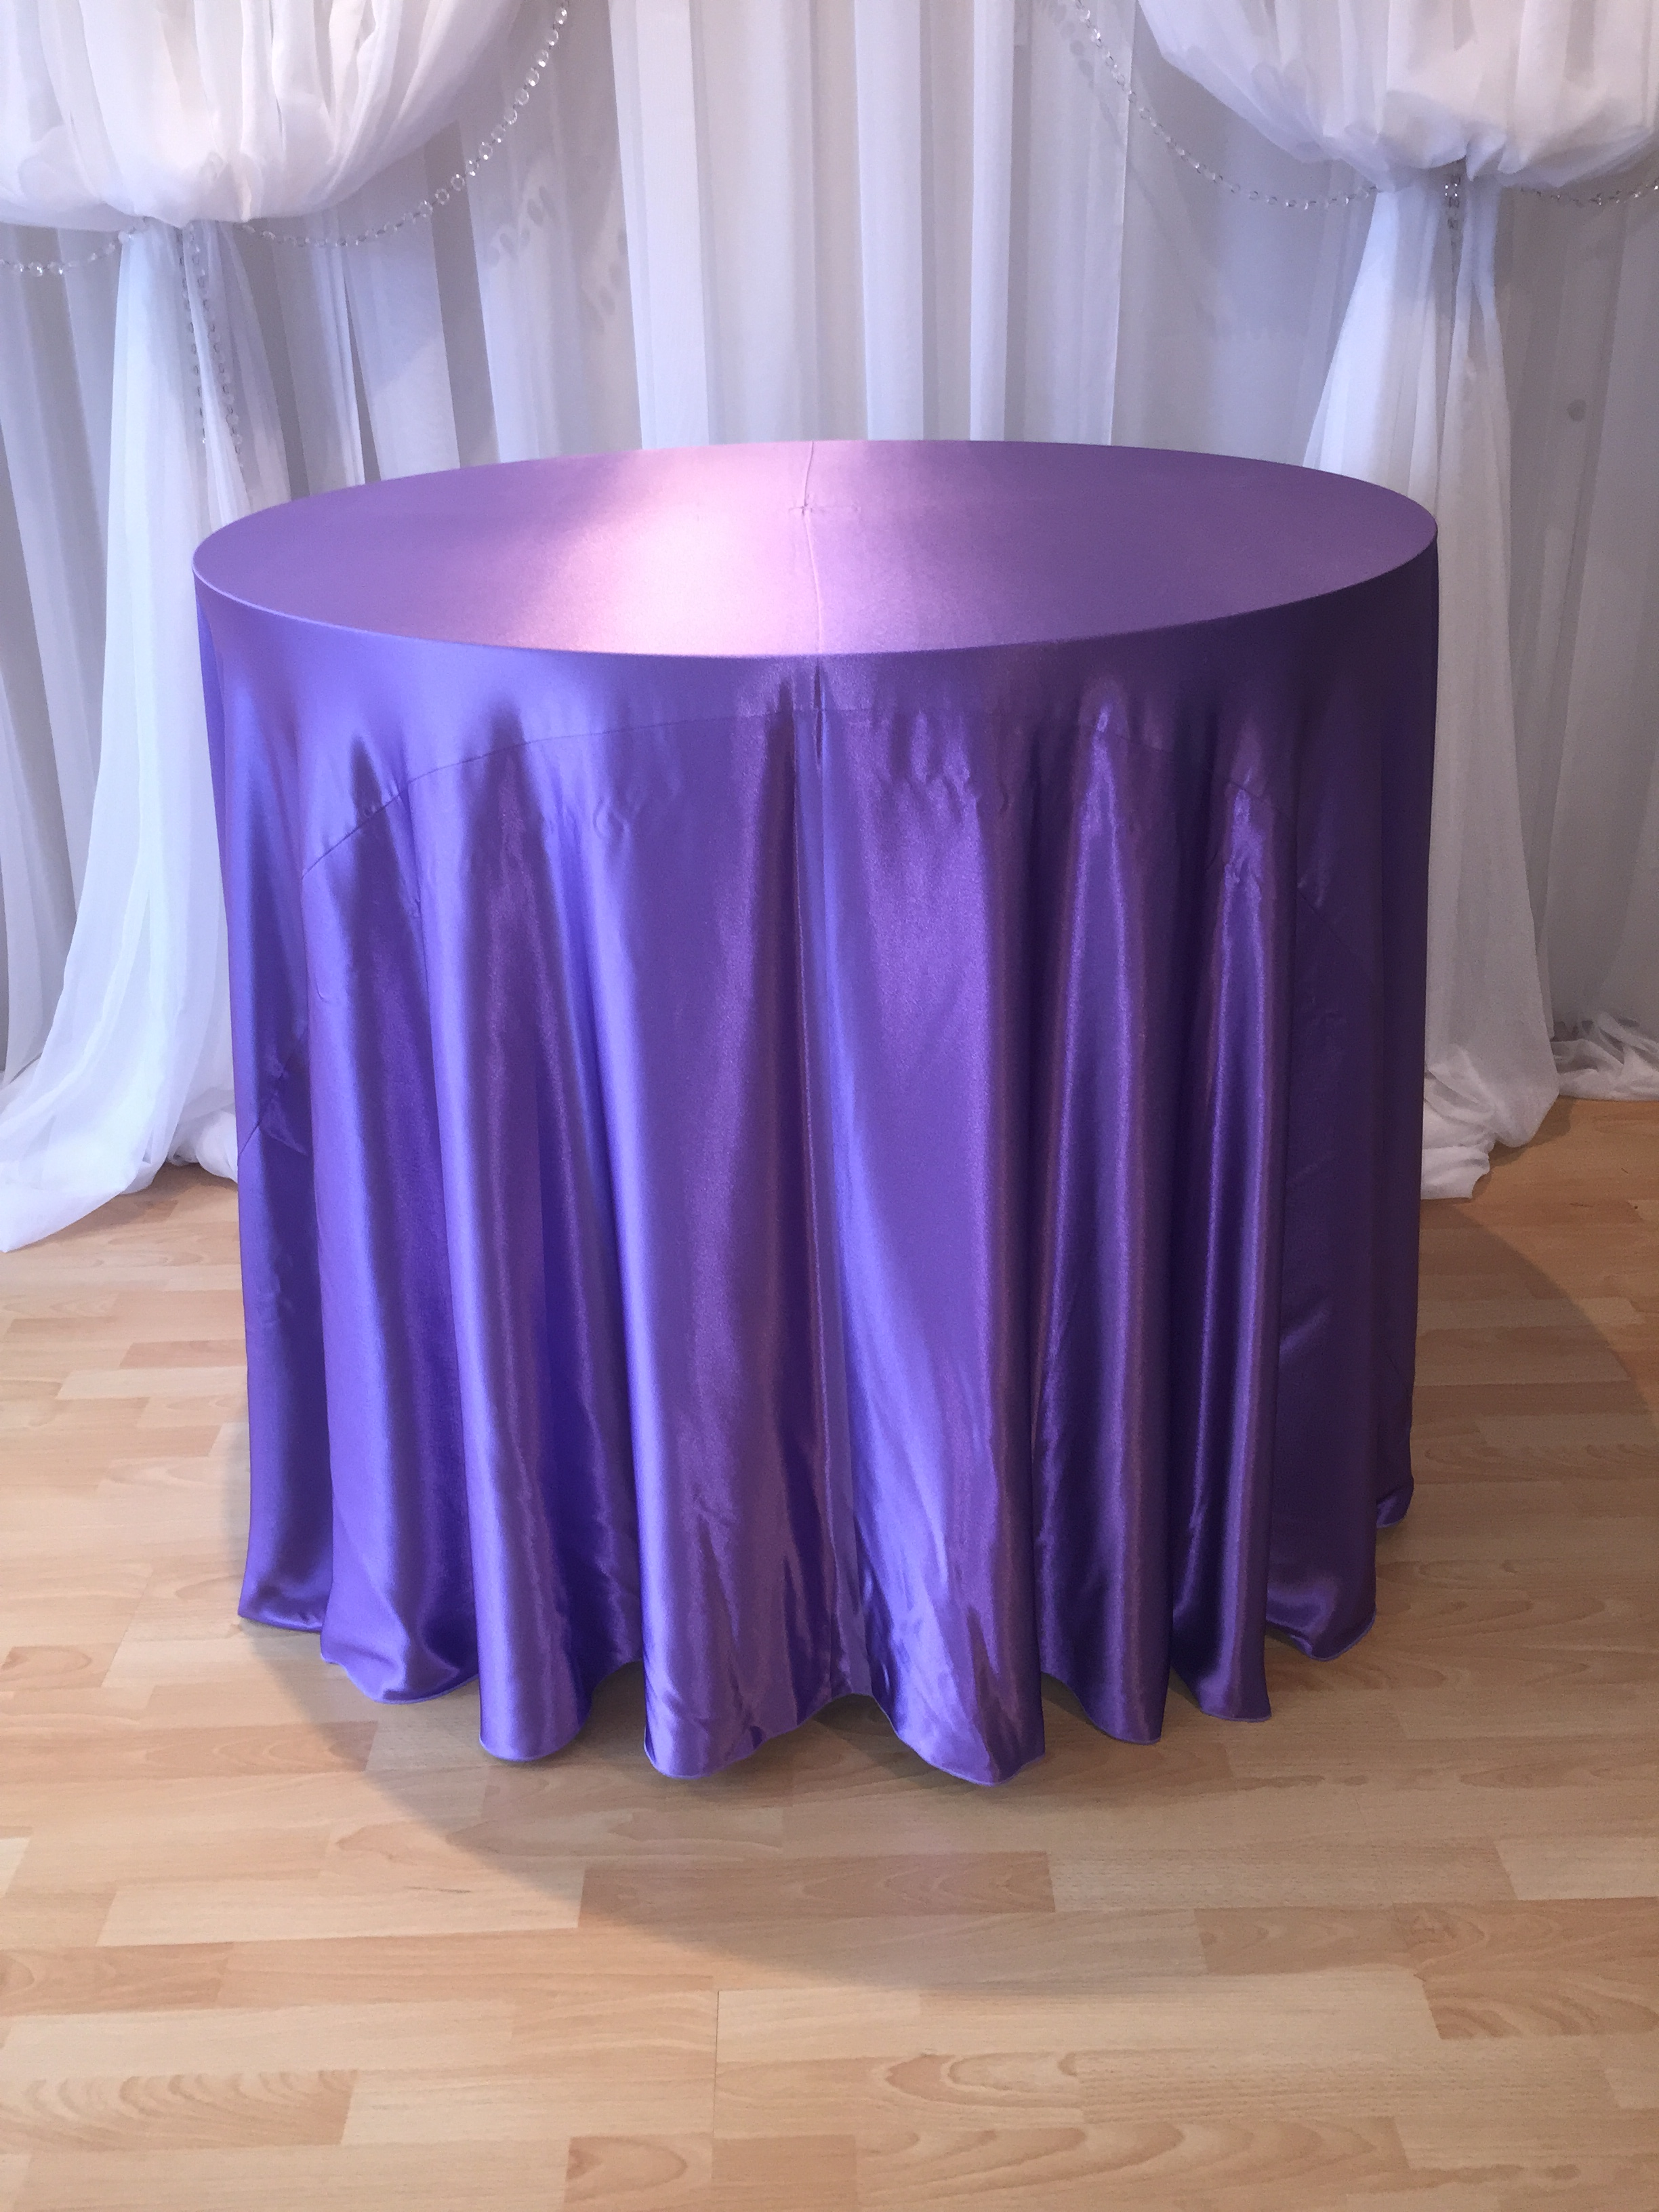 Chair Decor 187 Lavendar Satin Tablecloth